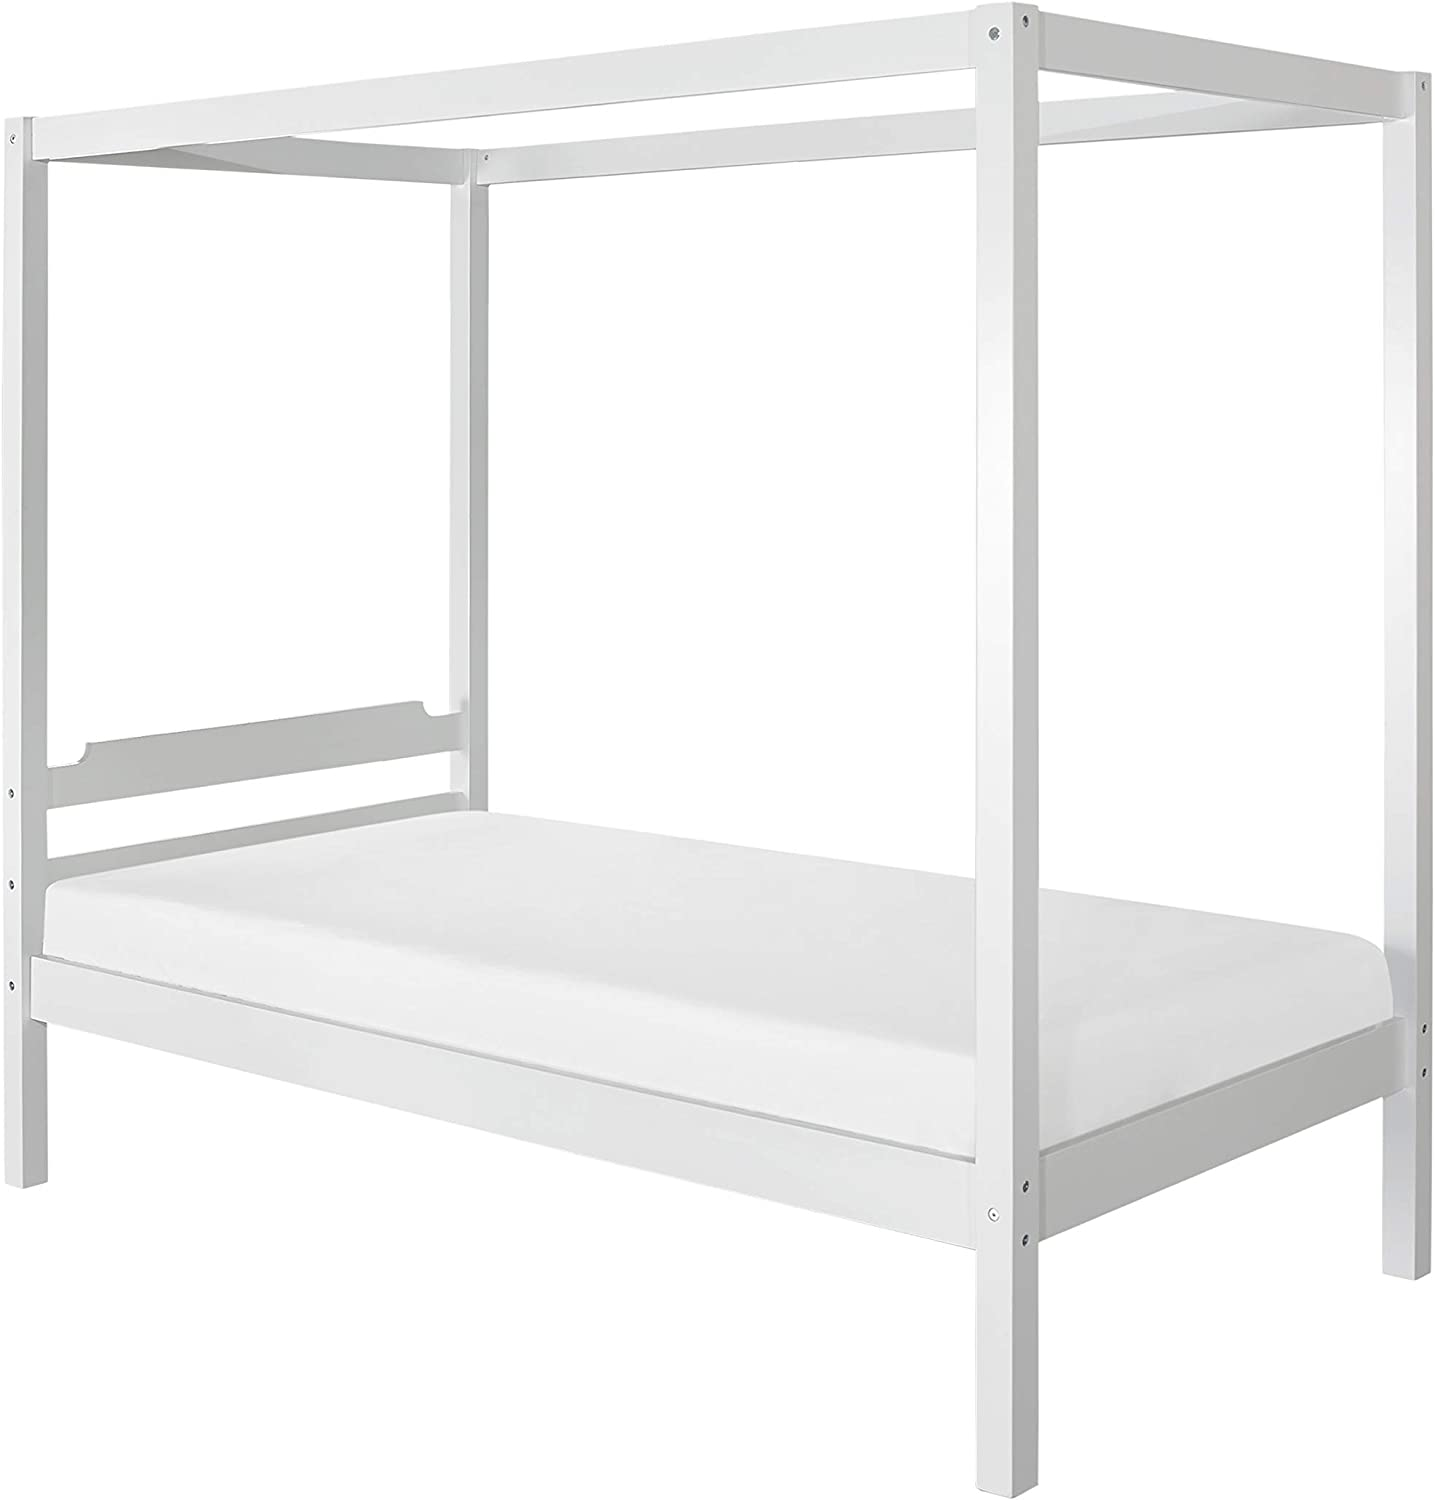 - Amazon.com: Hillsdale Furniture Sutton Canopy Bed, Twin, White